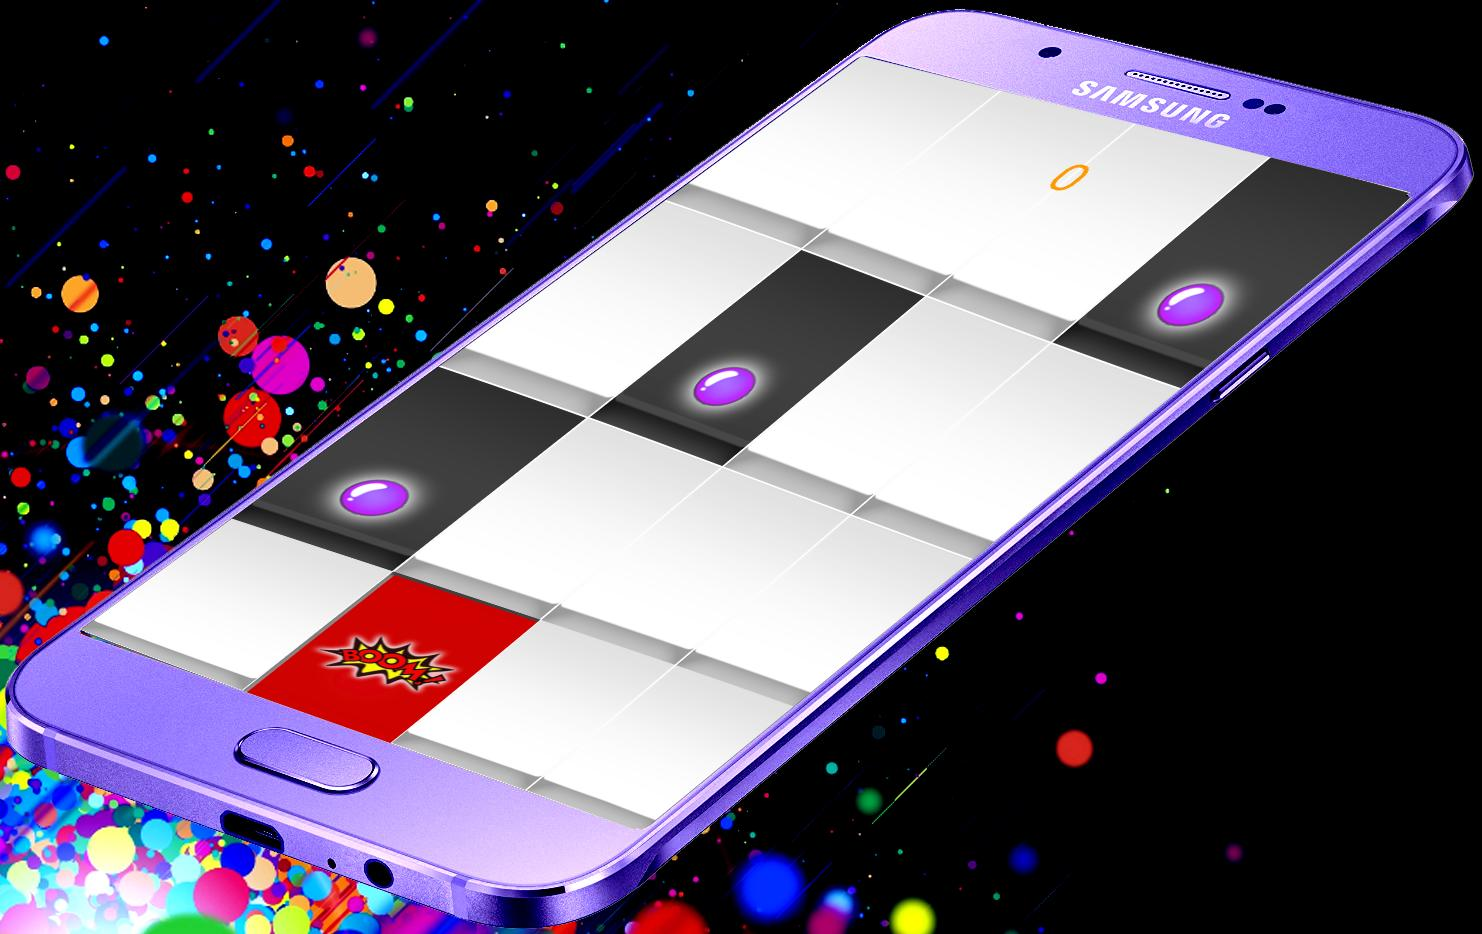 BTS - Euphoria - Piano Tiles for Android - APK Download